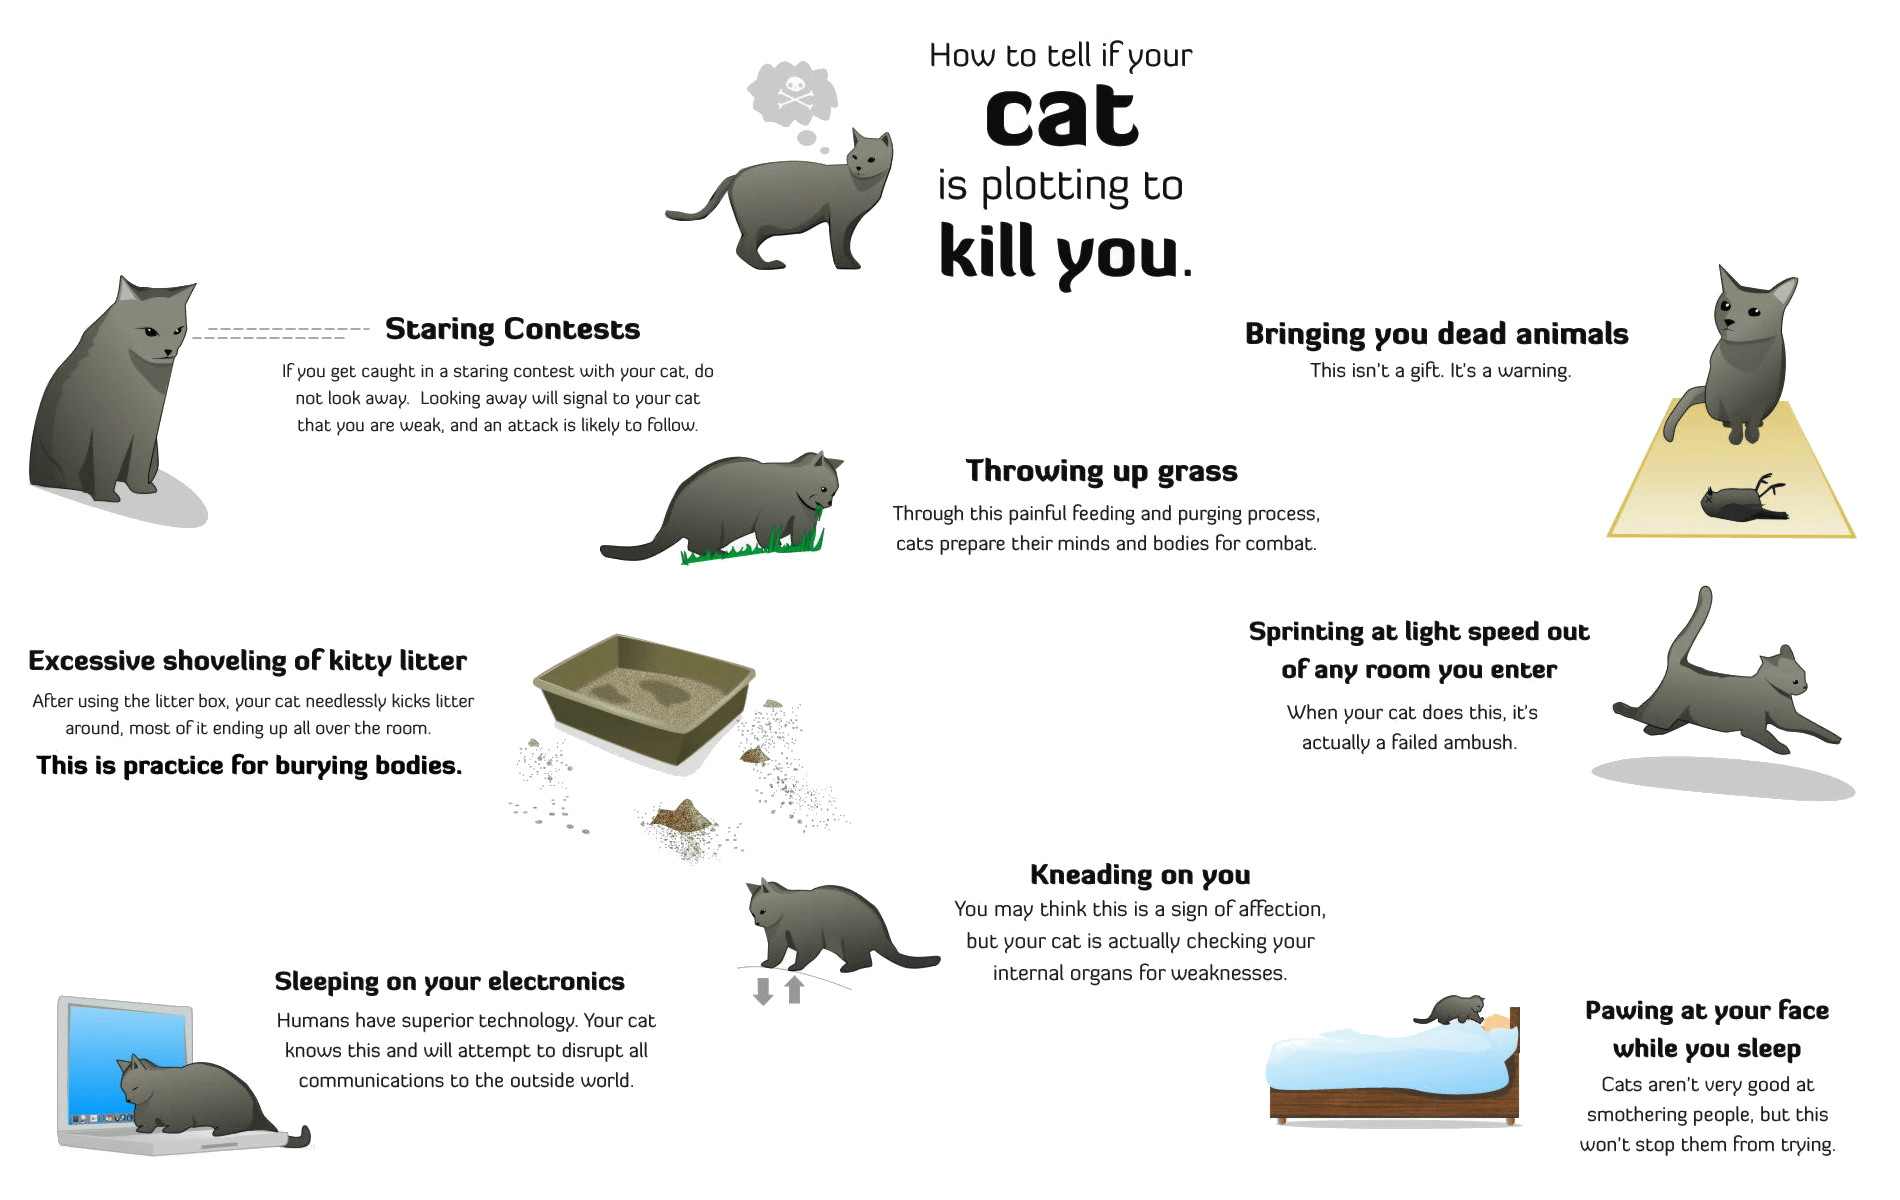 how-to-tell-if-your-cat-is-plotting-to-kill-you